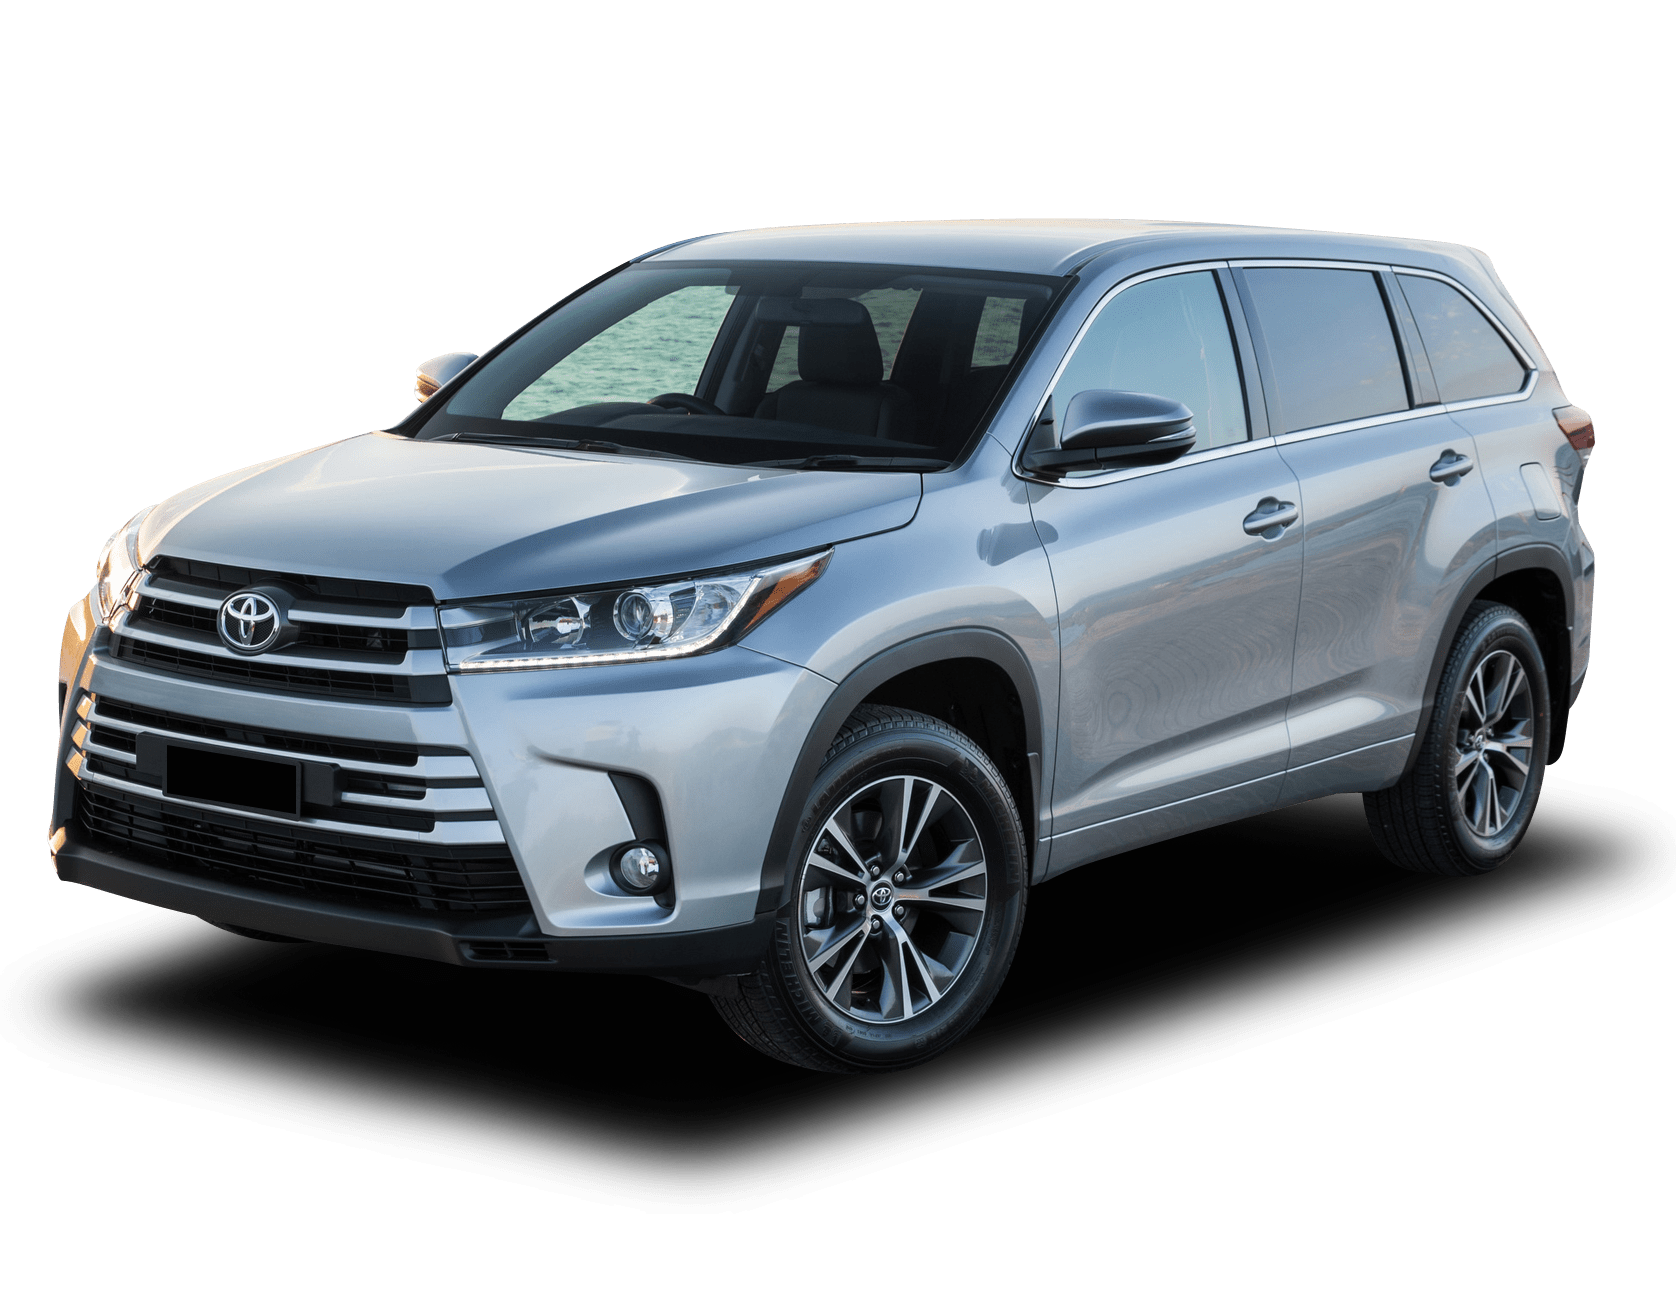 highlander rating limited reviews toyota platinum view cars msrp and trend front motor